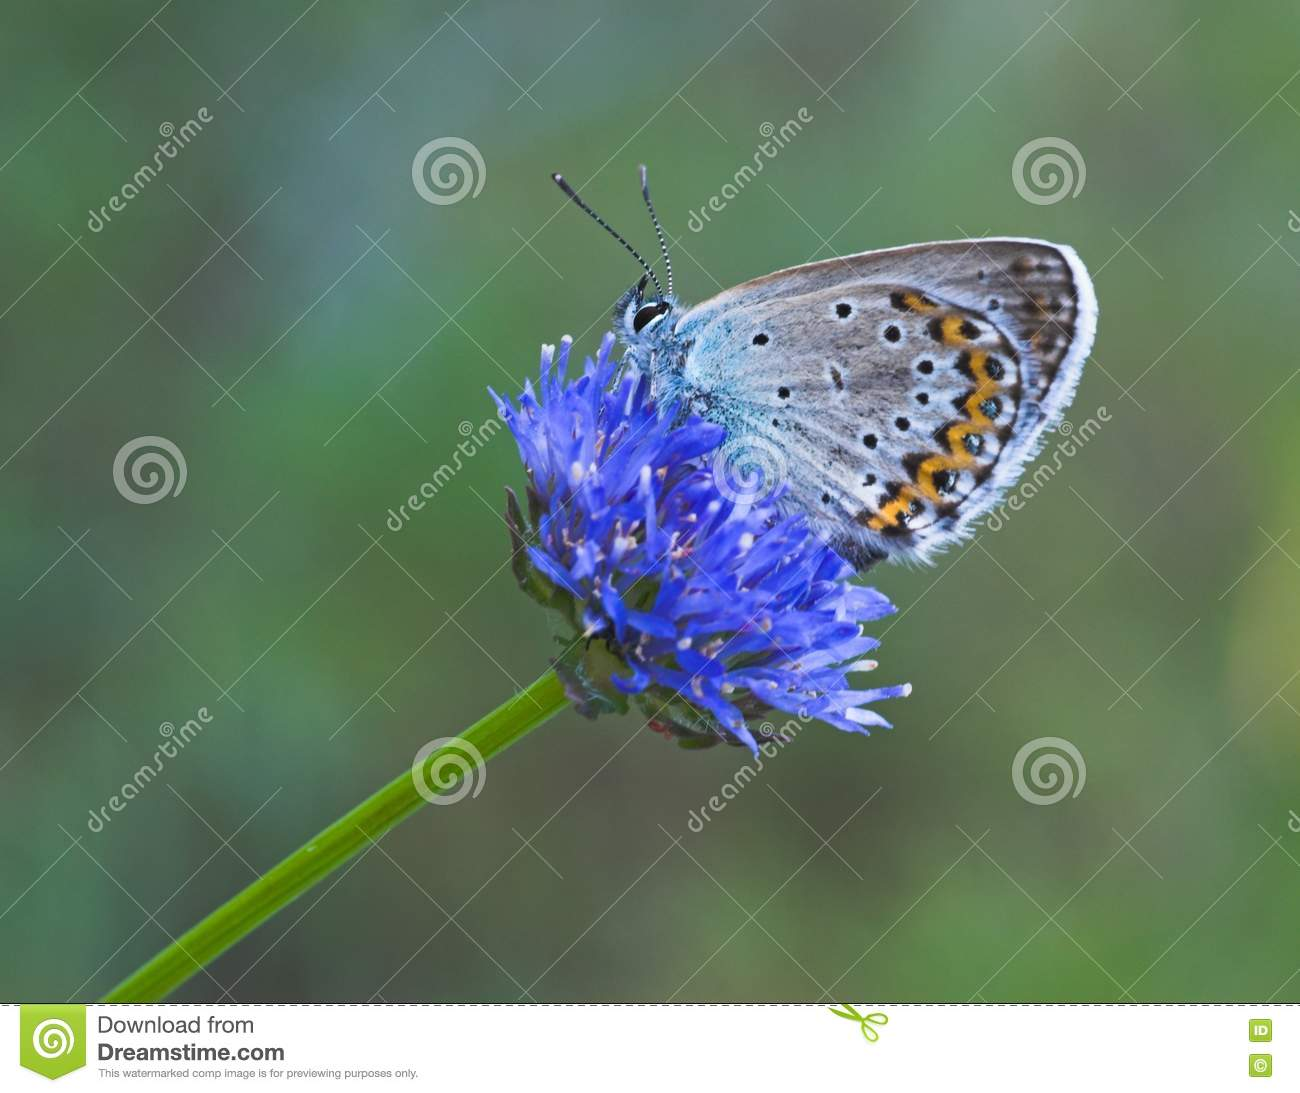 Blue Butterfly On Blue Flower Picture. Image  888867 9f50437b8f9